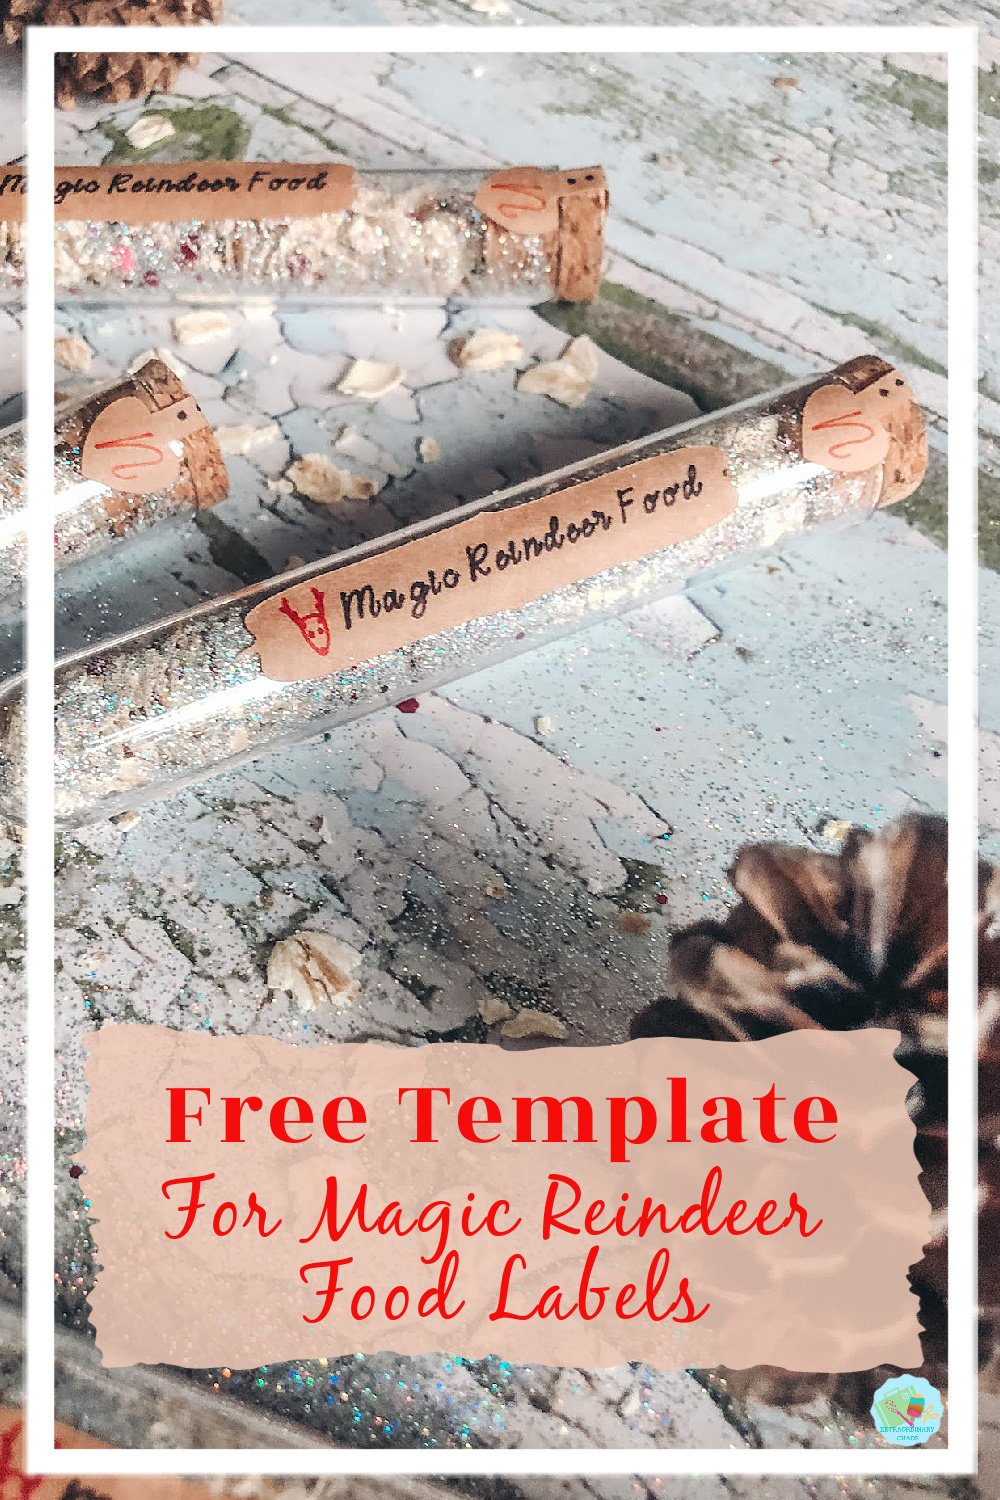 Free label and bottle stop templates for Magic Reindeer Food for Christmas